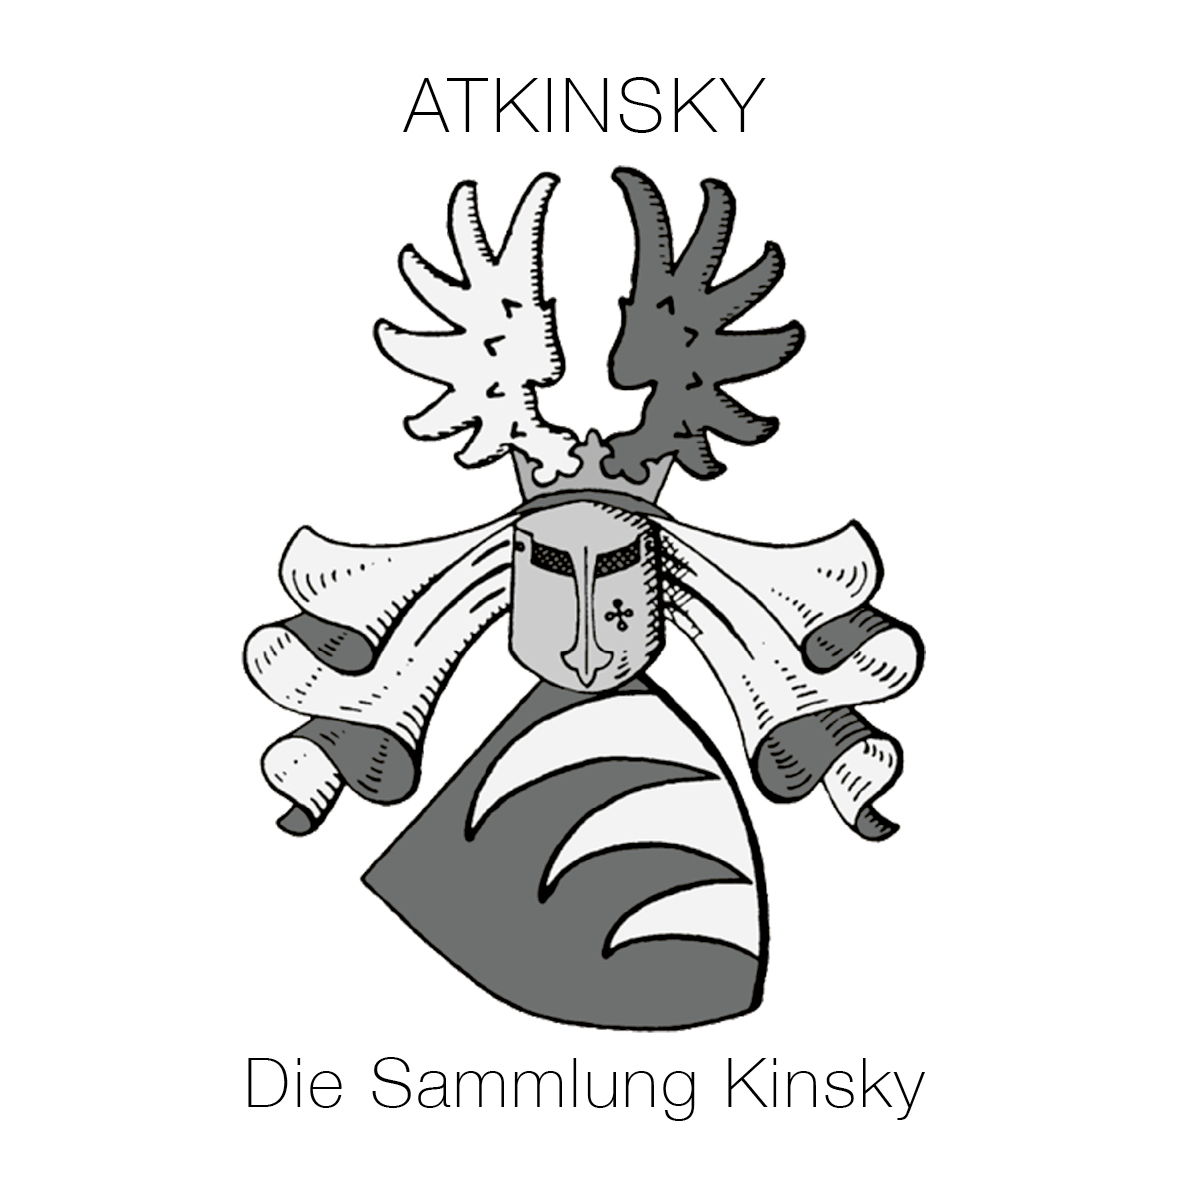 the offical logo of atKinsky die Sammlung Kinsky, shows the families Coat of Arms and slogan for the private art collection